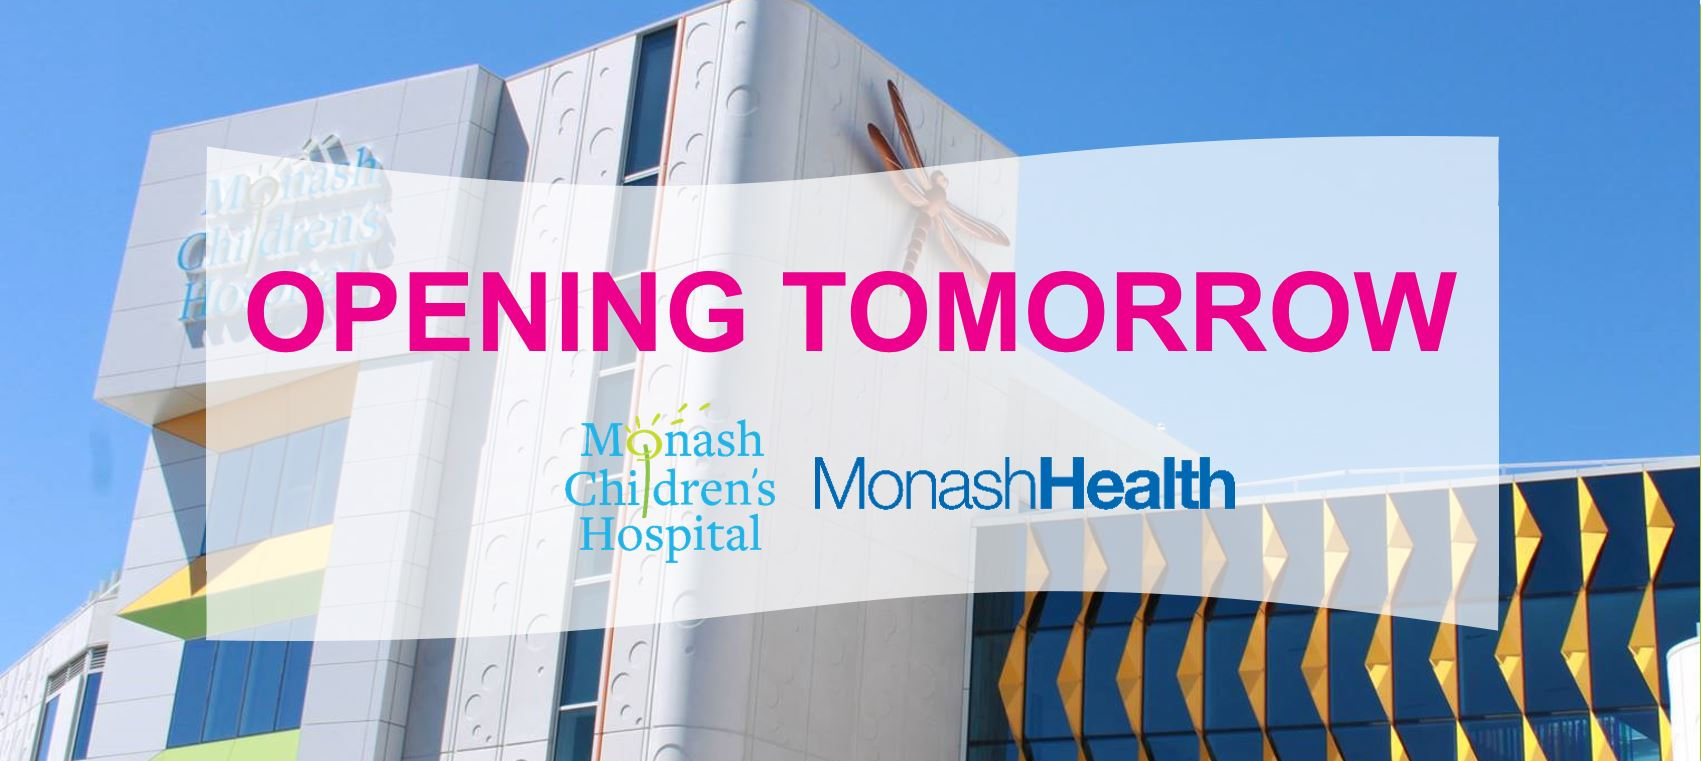 mch-org-opening-tomorrow-image_v2